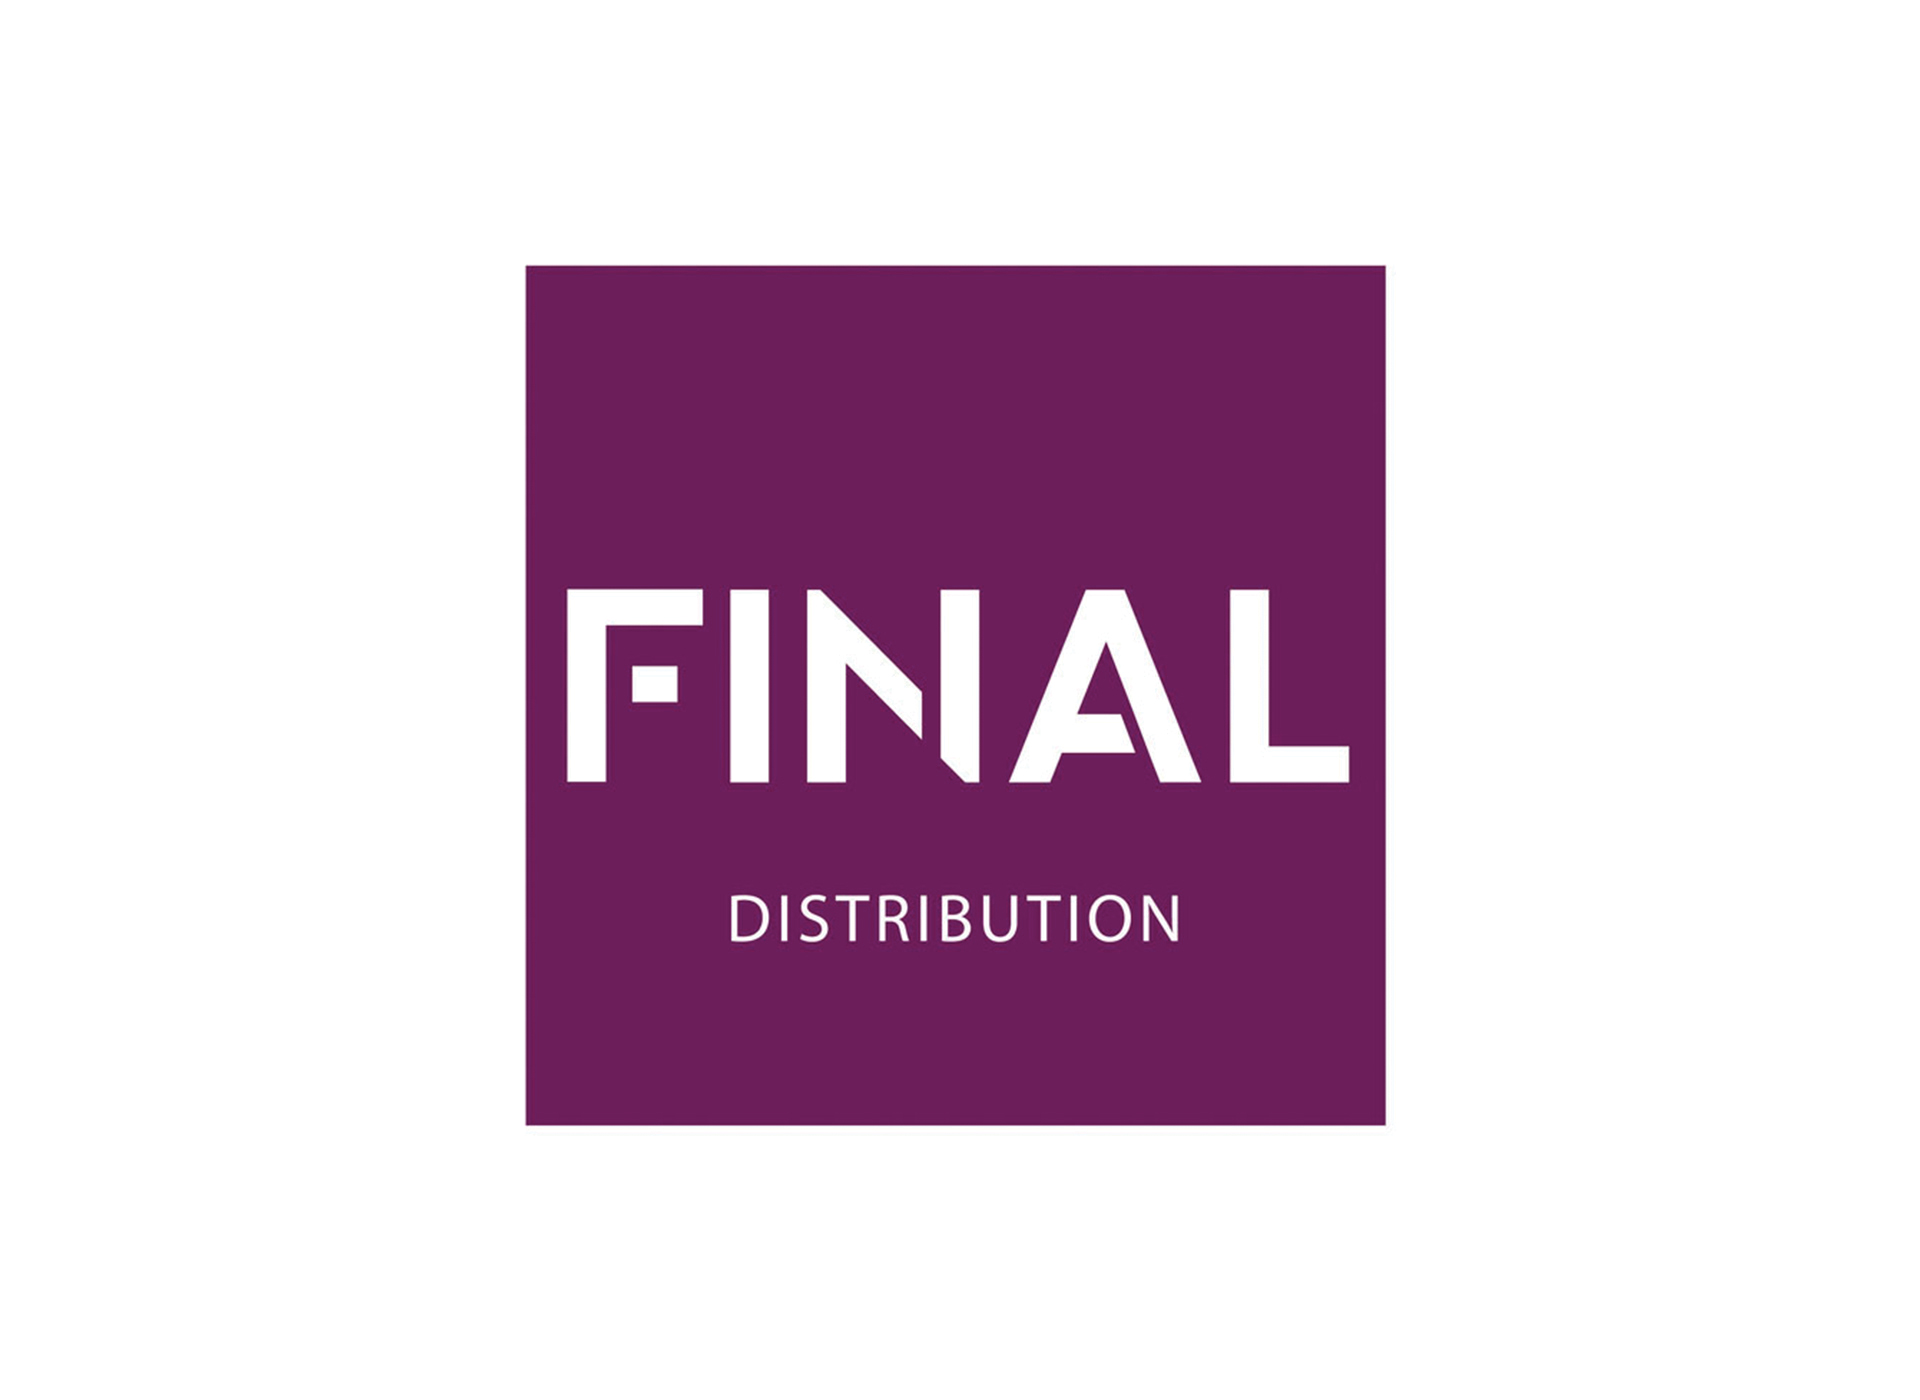 final distribution logo